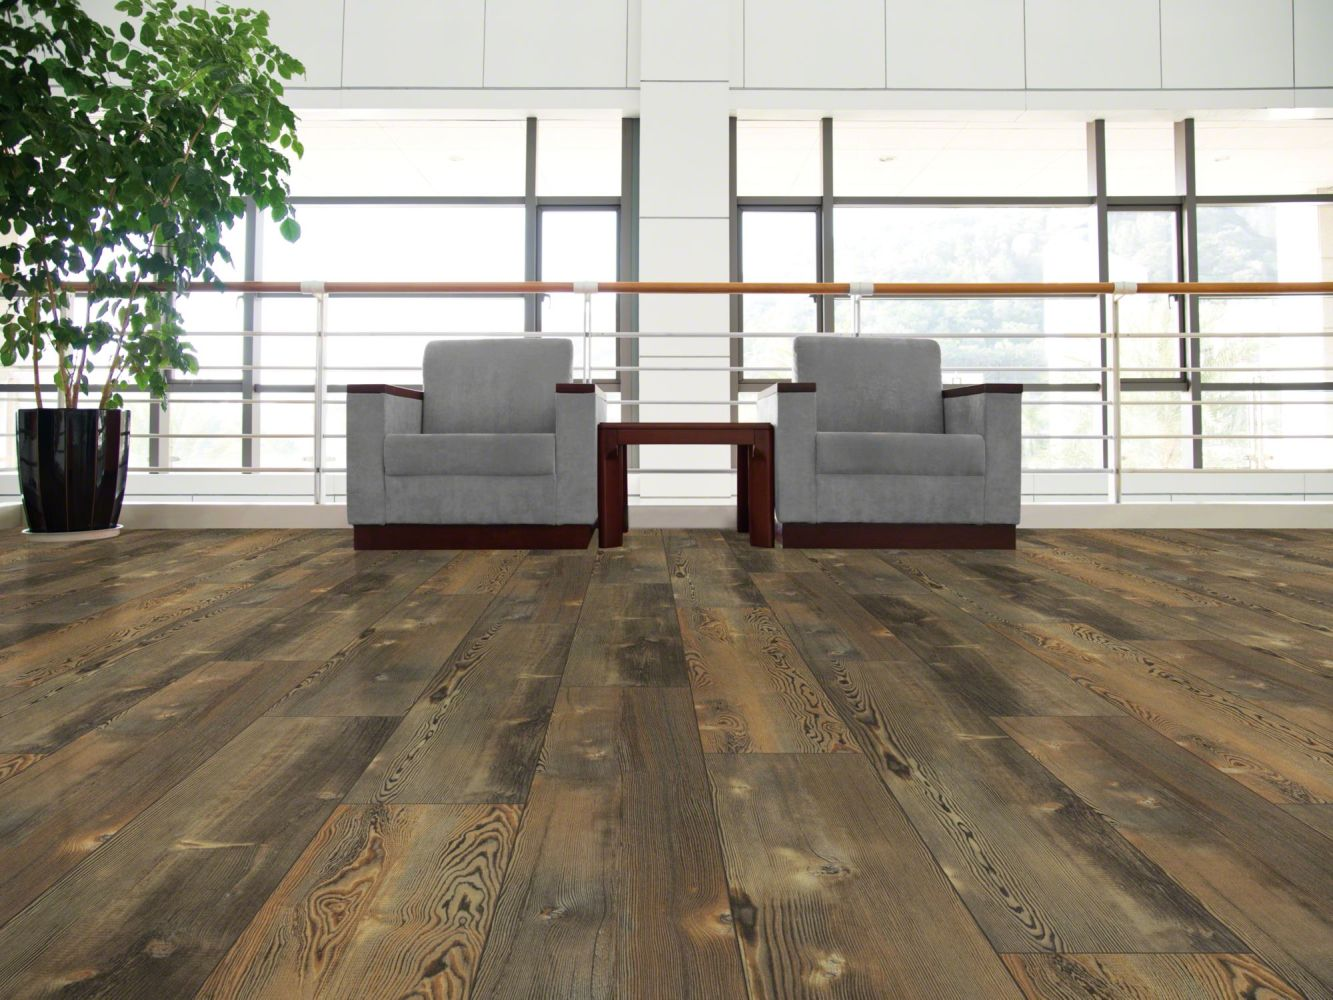 Shaw Floors Vinyl Residential Blue Ridge Pine 720c HD Plus Earthy Pine 00623_0864V